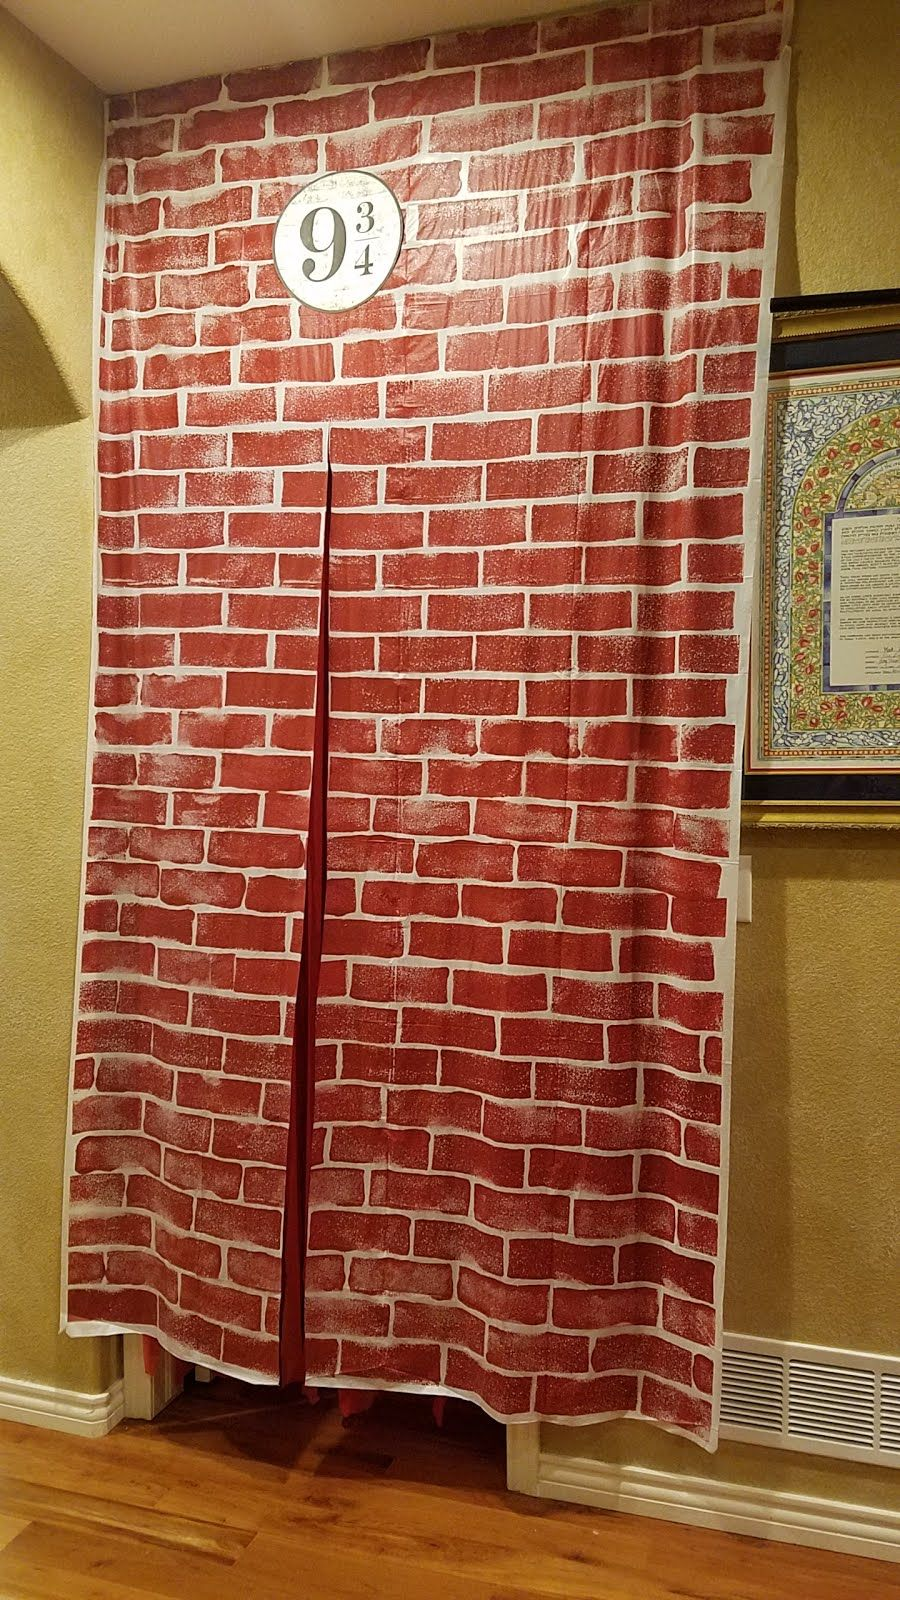 DIY Harry Potter Party Decor: Platform 9 3/4 made out of ...